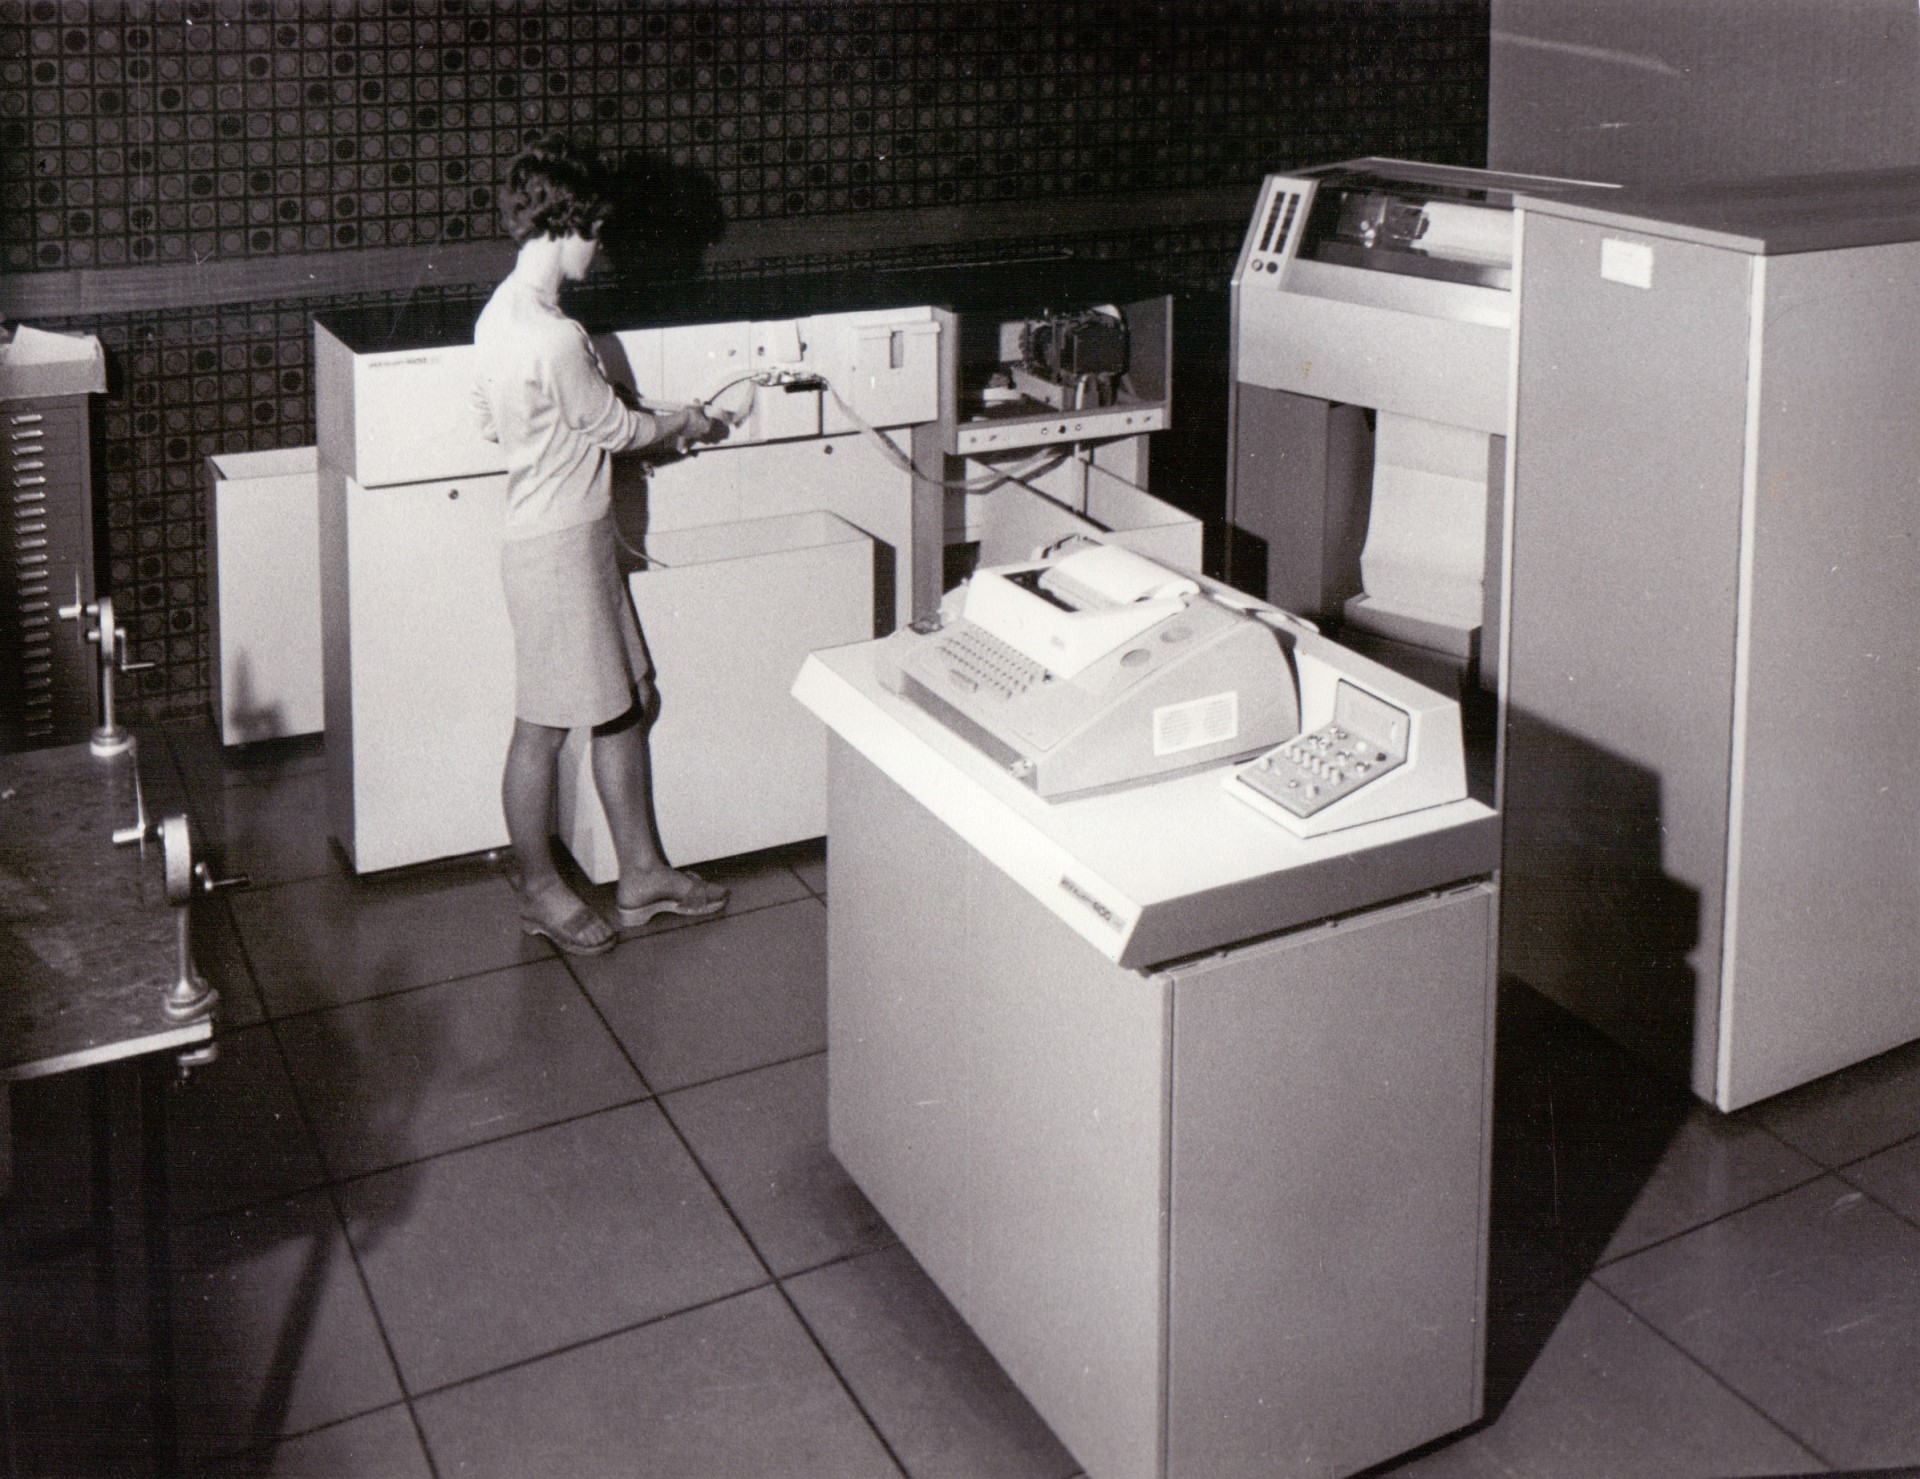 A member of staff operating an early computer